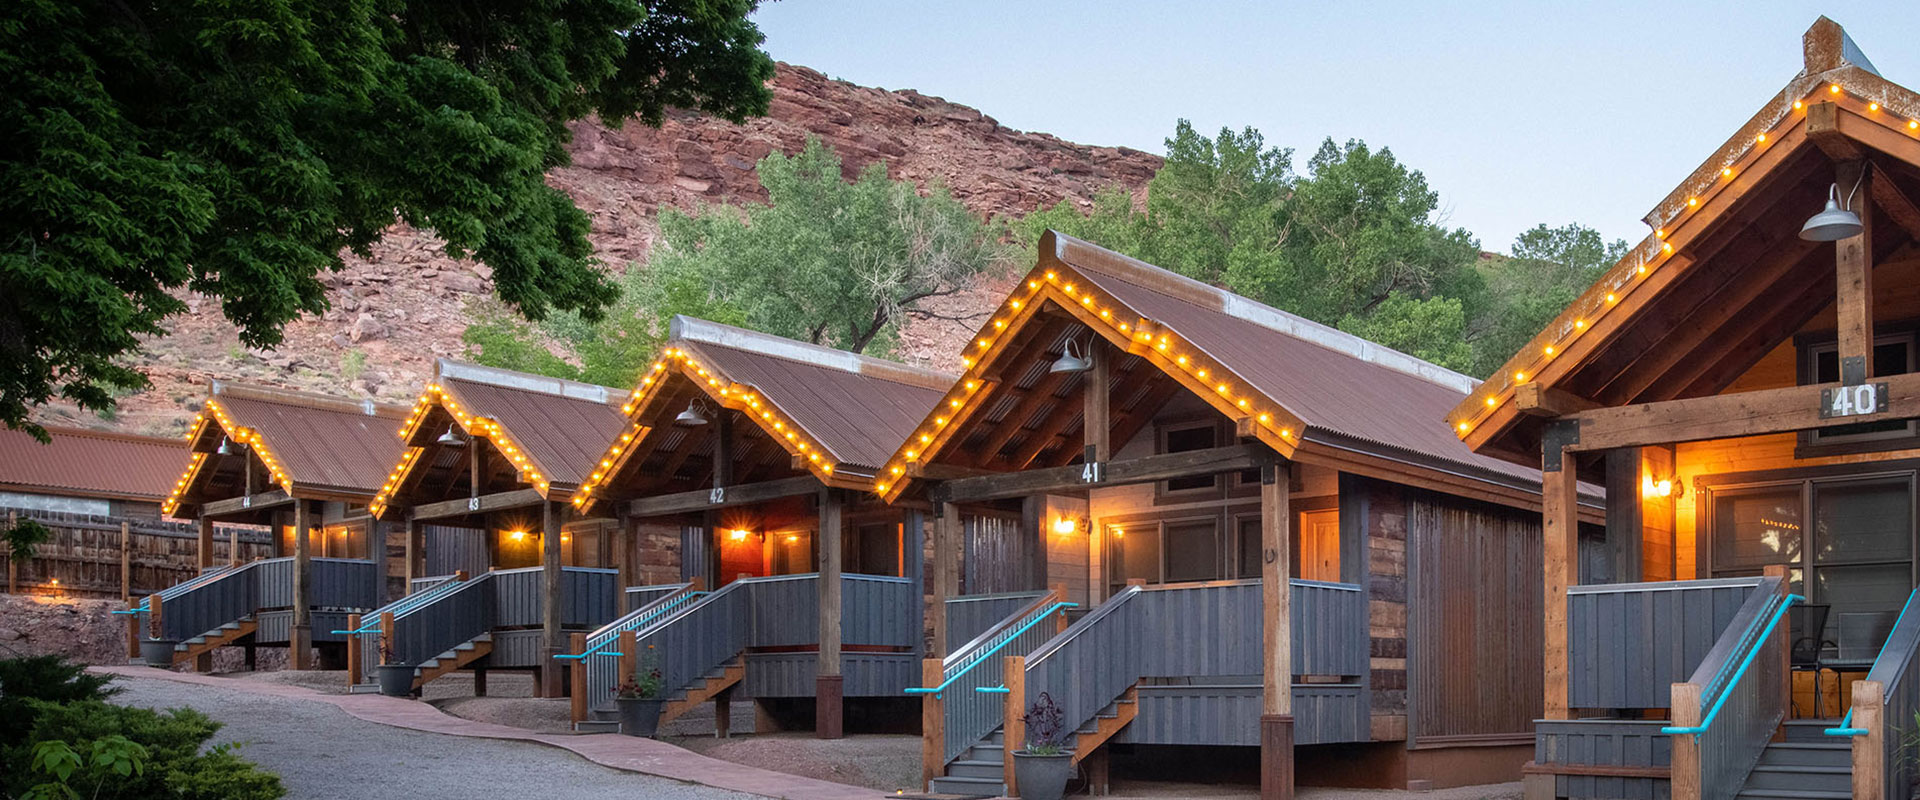 A view of two storey townhomes with closed garages and surrounding trees bearing yellow leaves on a cloudy day at Moab Springs Ranch in Utah.